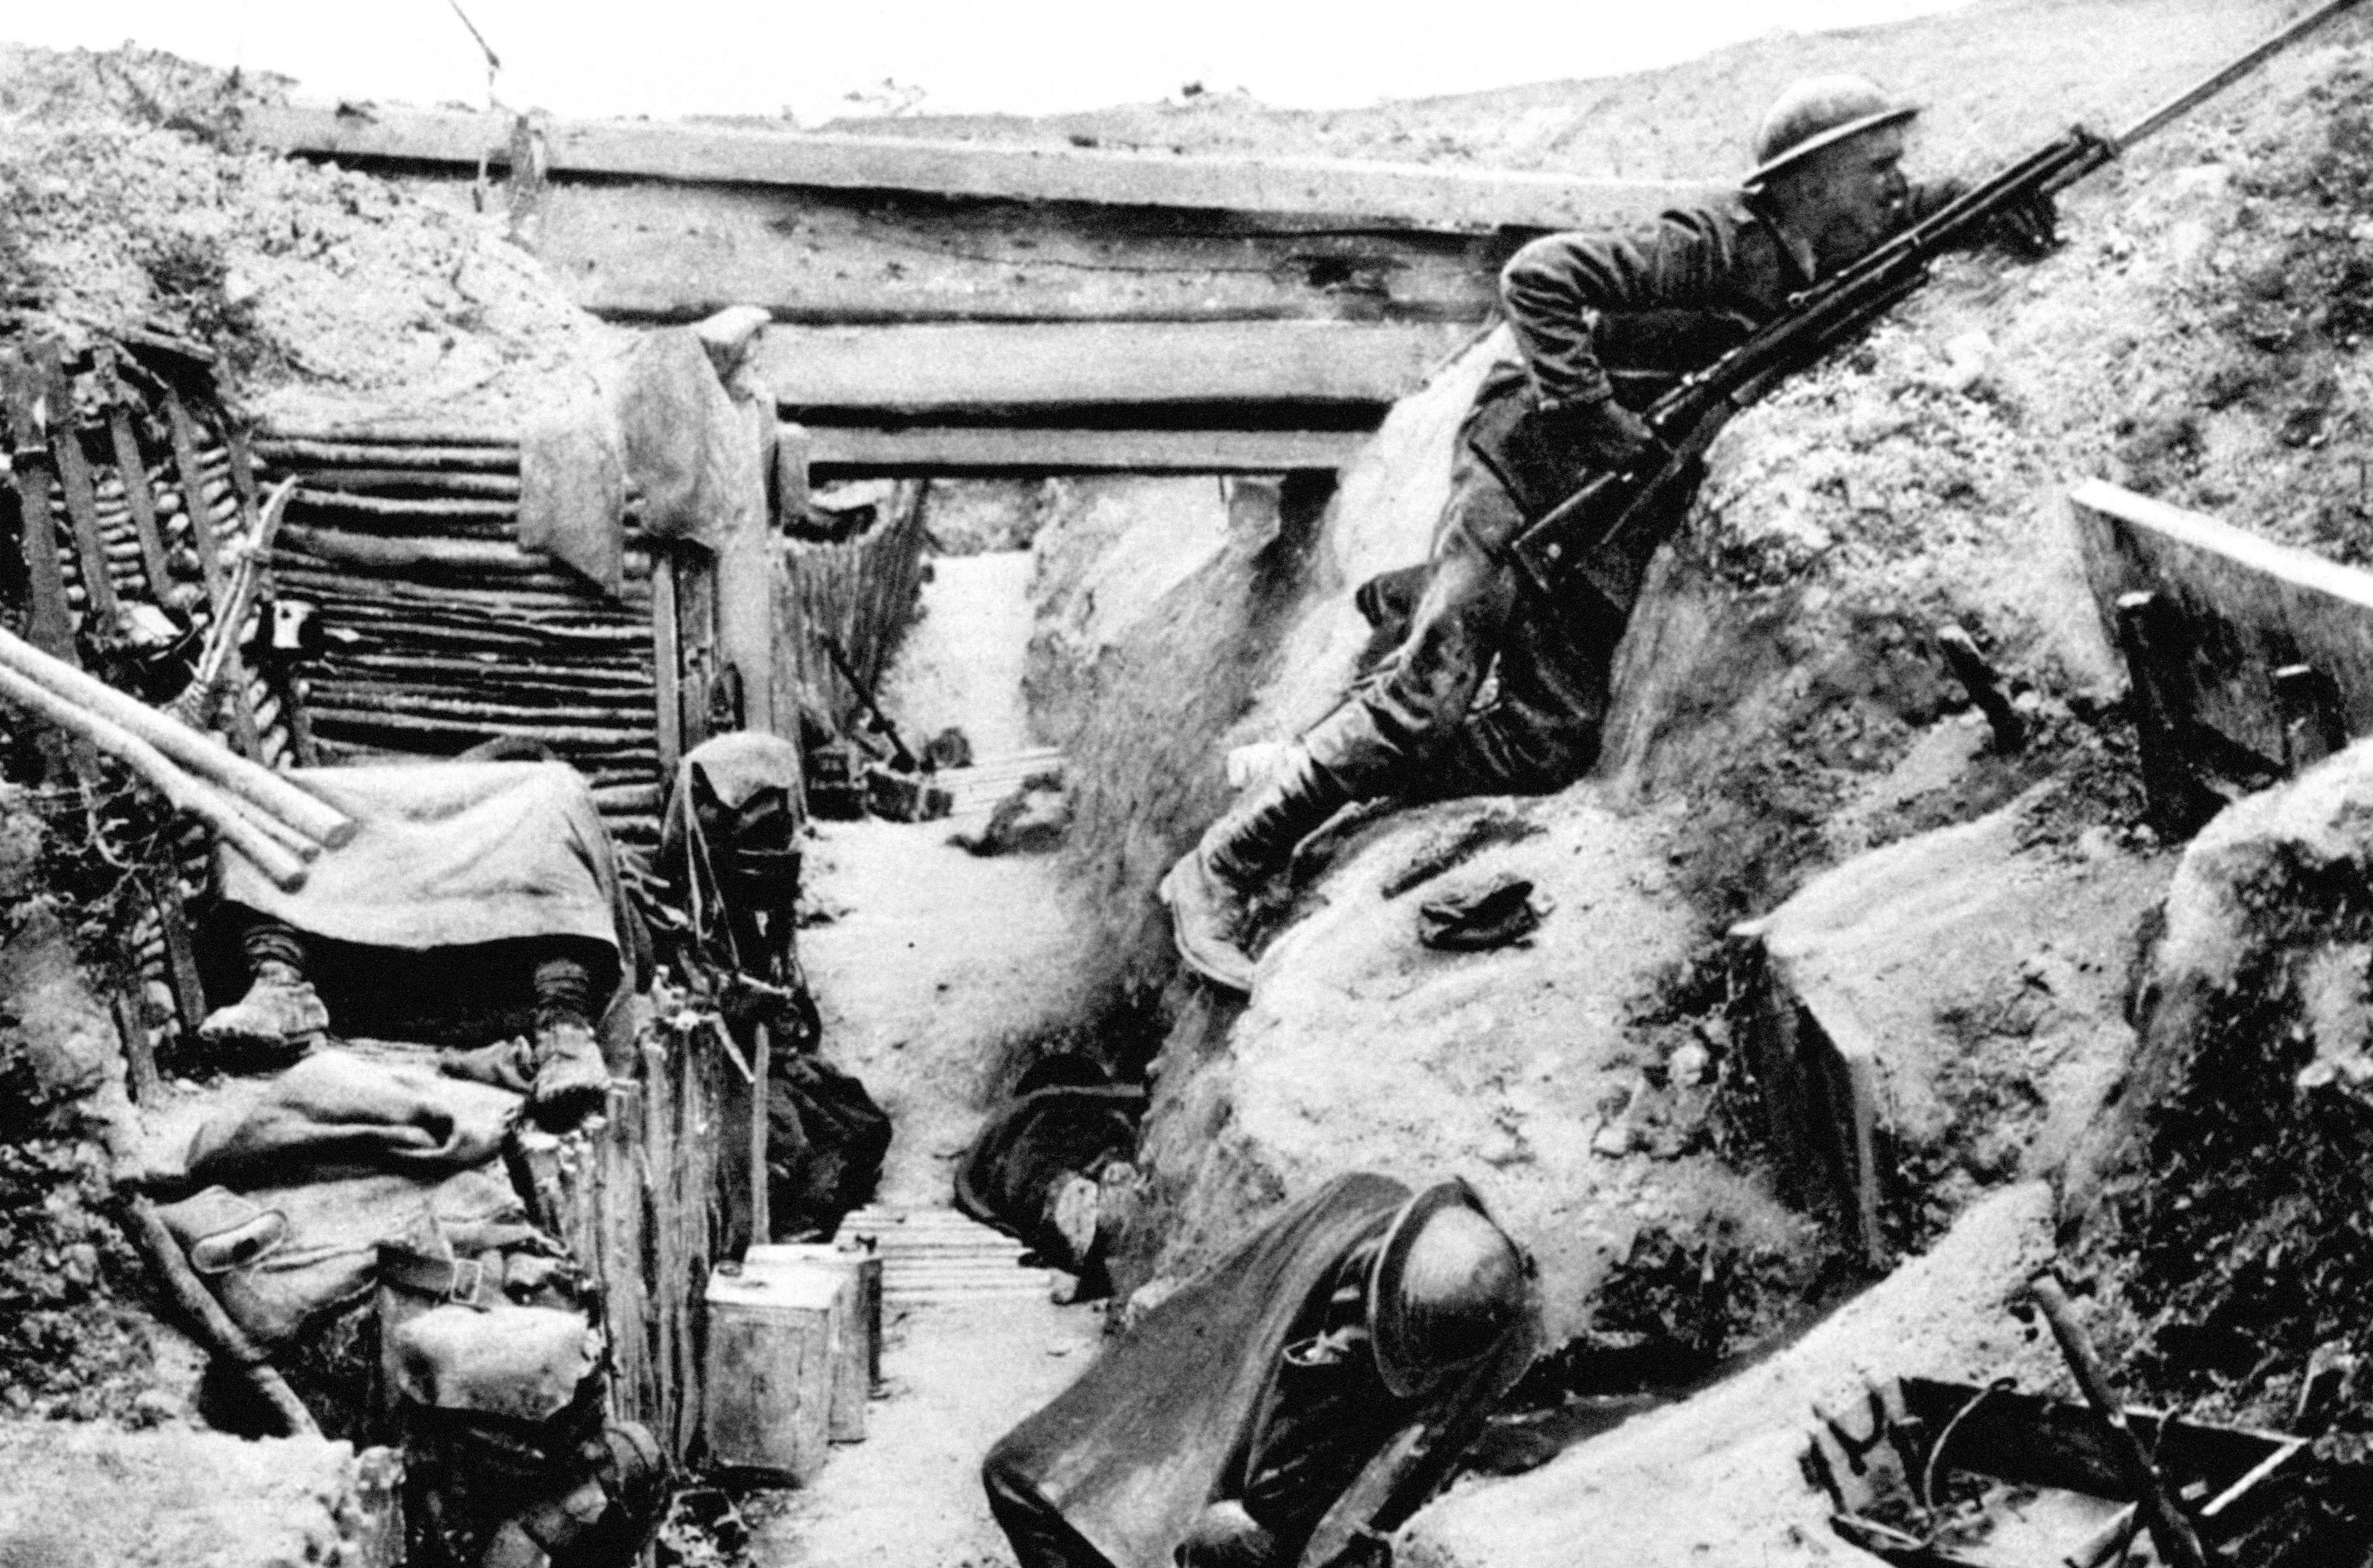 British comrades sleep in a captured German trench at Ovillers, near Albert, during the Battle of the Somme in 1916.